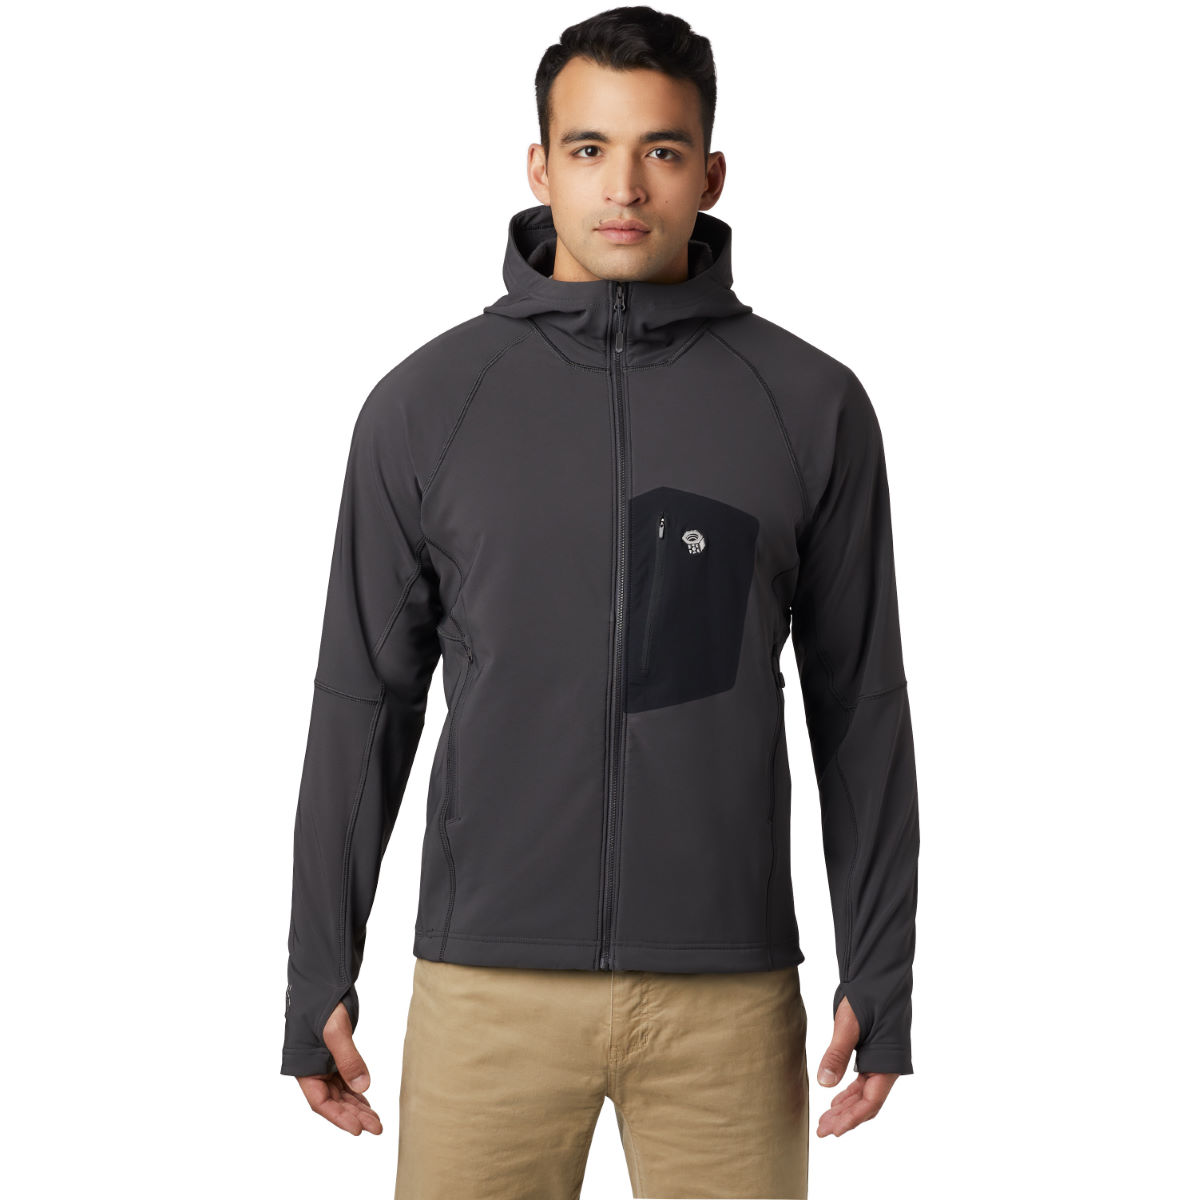 Mountain Hardwear Mountain Hardwear Keele™ Hoody   Hoodies